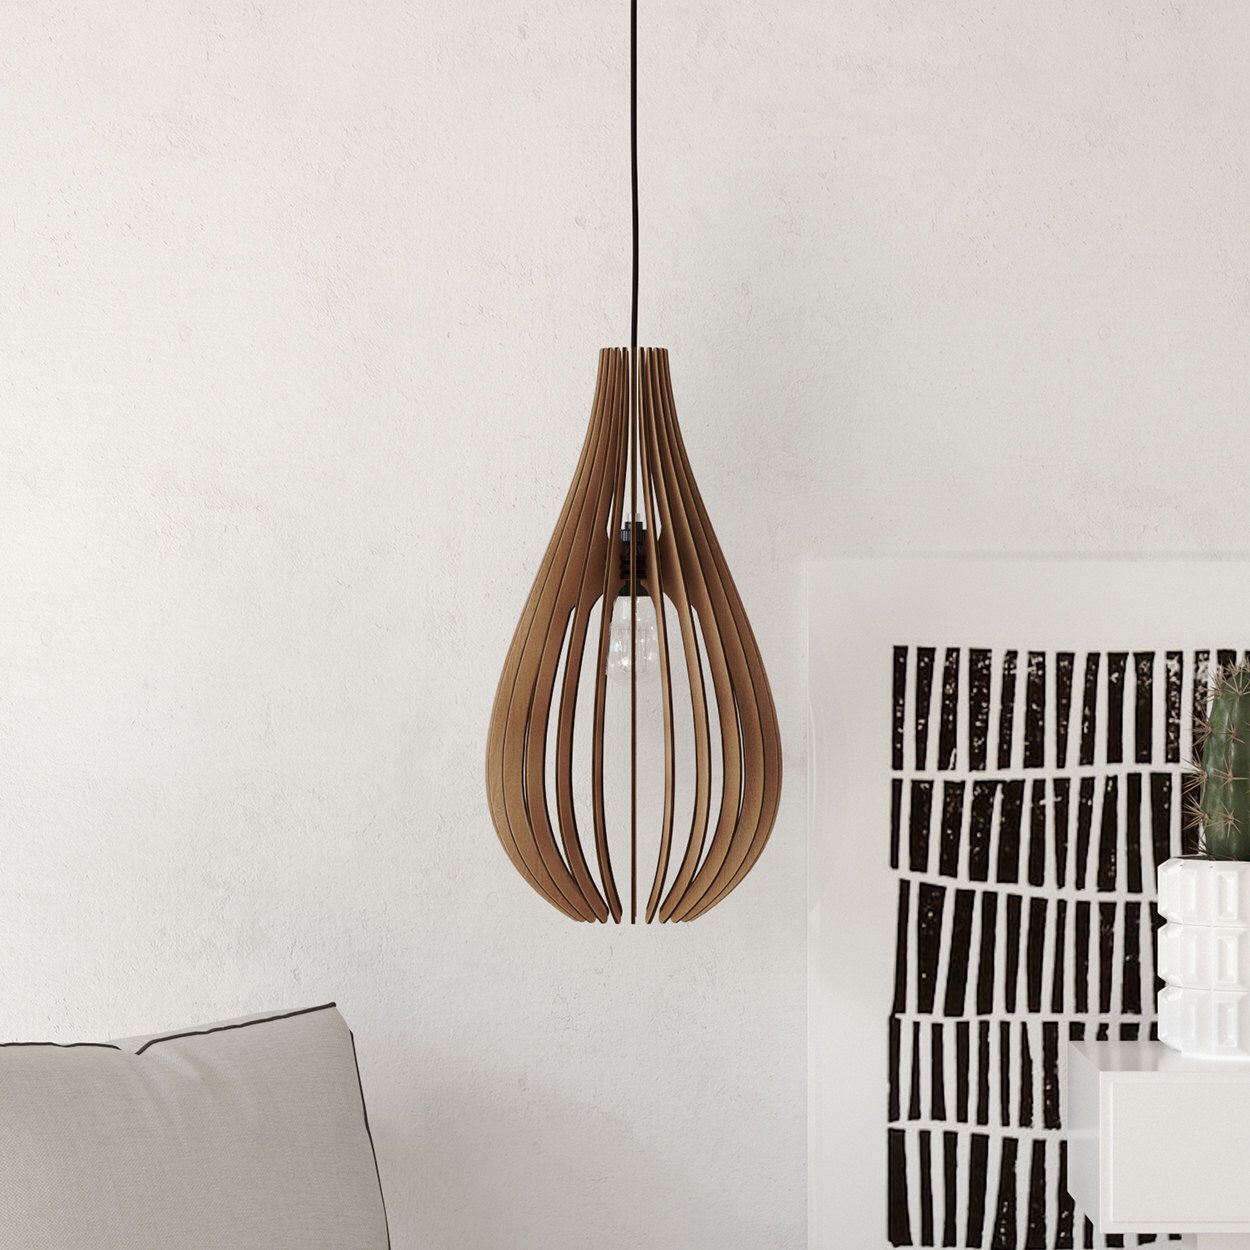 Wood pendant light lasercut chandelier lamp handmade plywood hanging wood pendant light lasercut chandelier lamp handmade plywood hanging ceiling cup ecological minimal modern design industrial arubaitofo Image collections